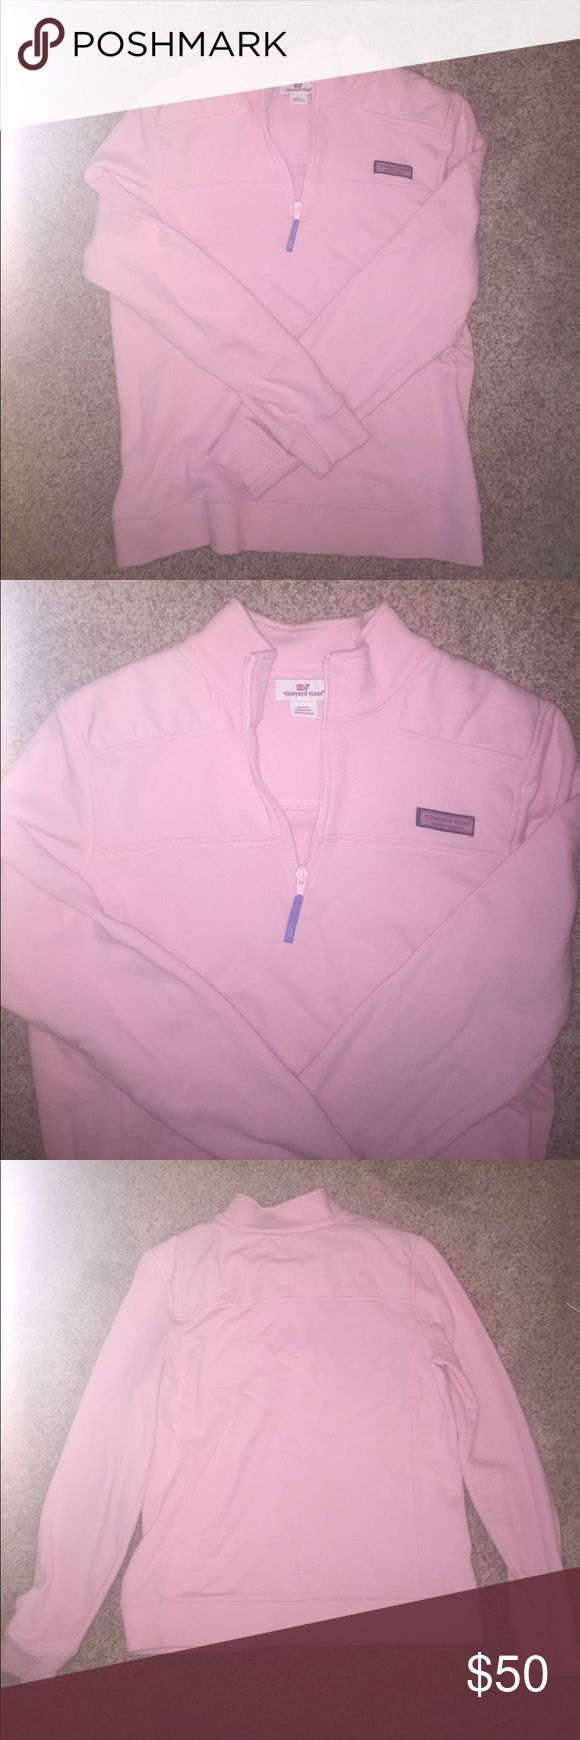 Vineyard Vines Pullover Worn a few times but no signs of wear, too small now, size M, light pink pullover! Vineyard Vines Jackets & Coats